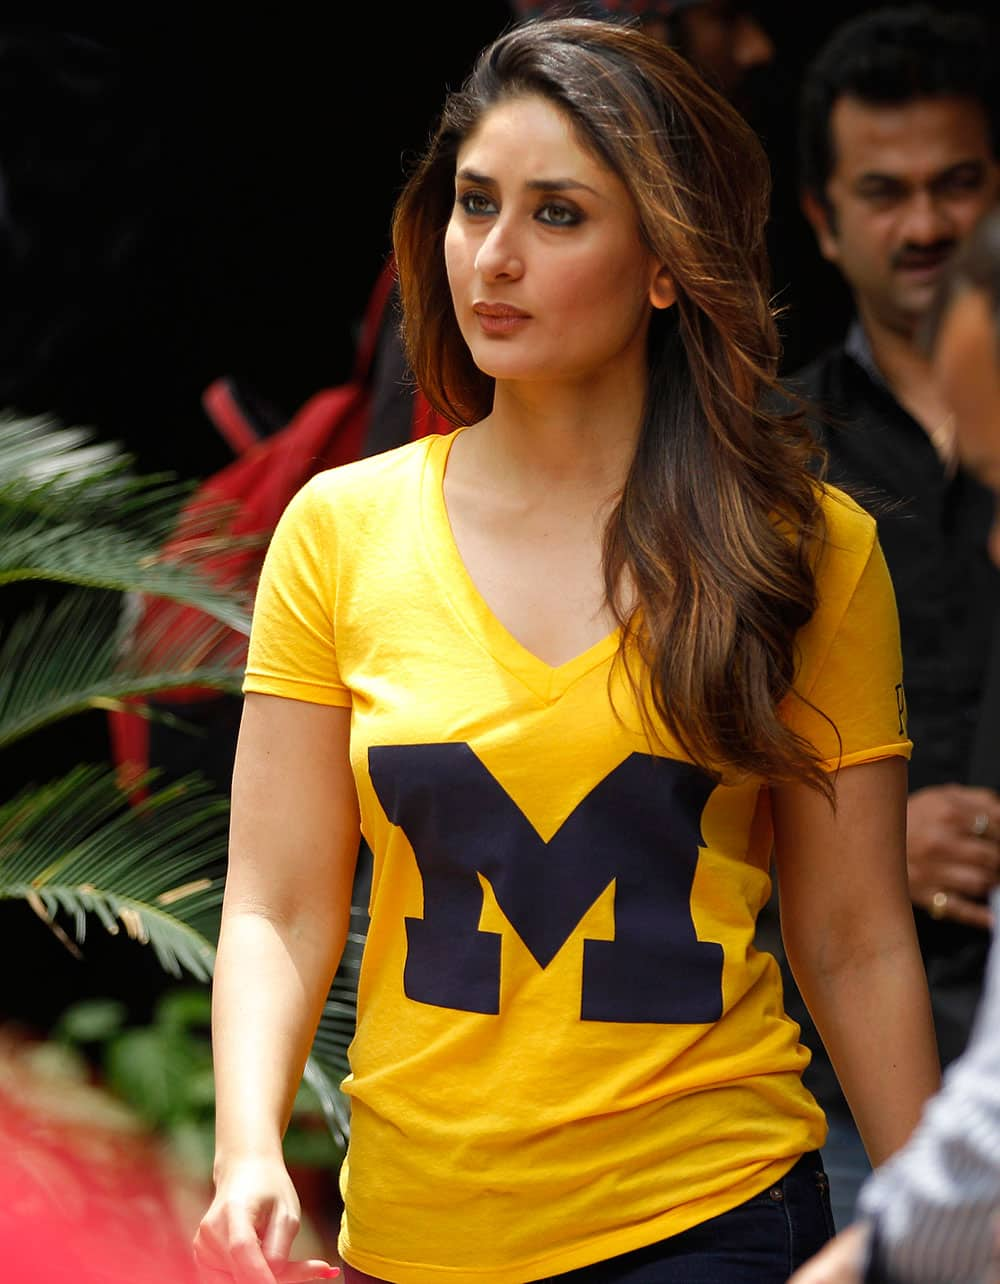 Bollywood actress Kareena Kapoor arrives for a promotional event for her upcoming movie